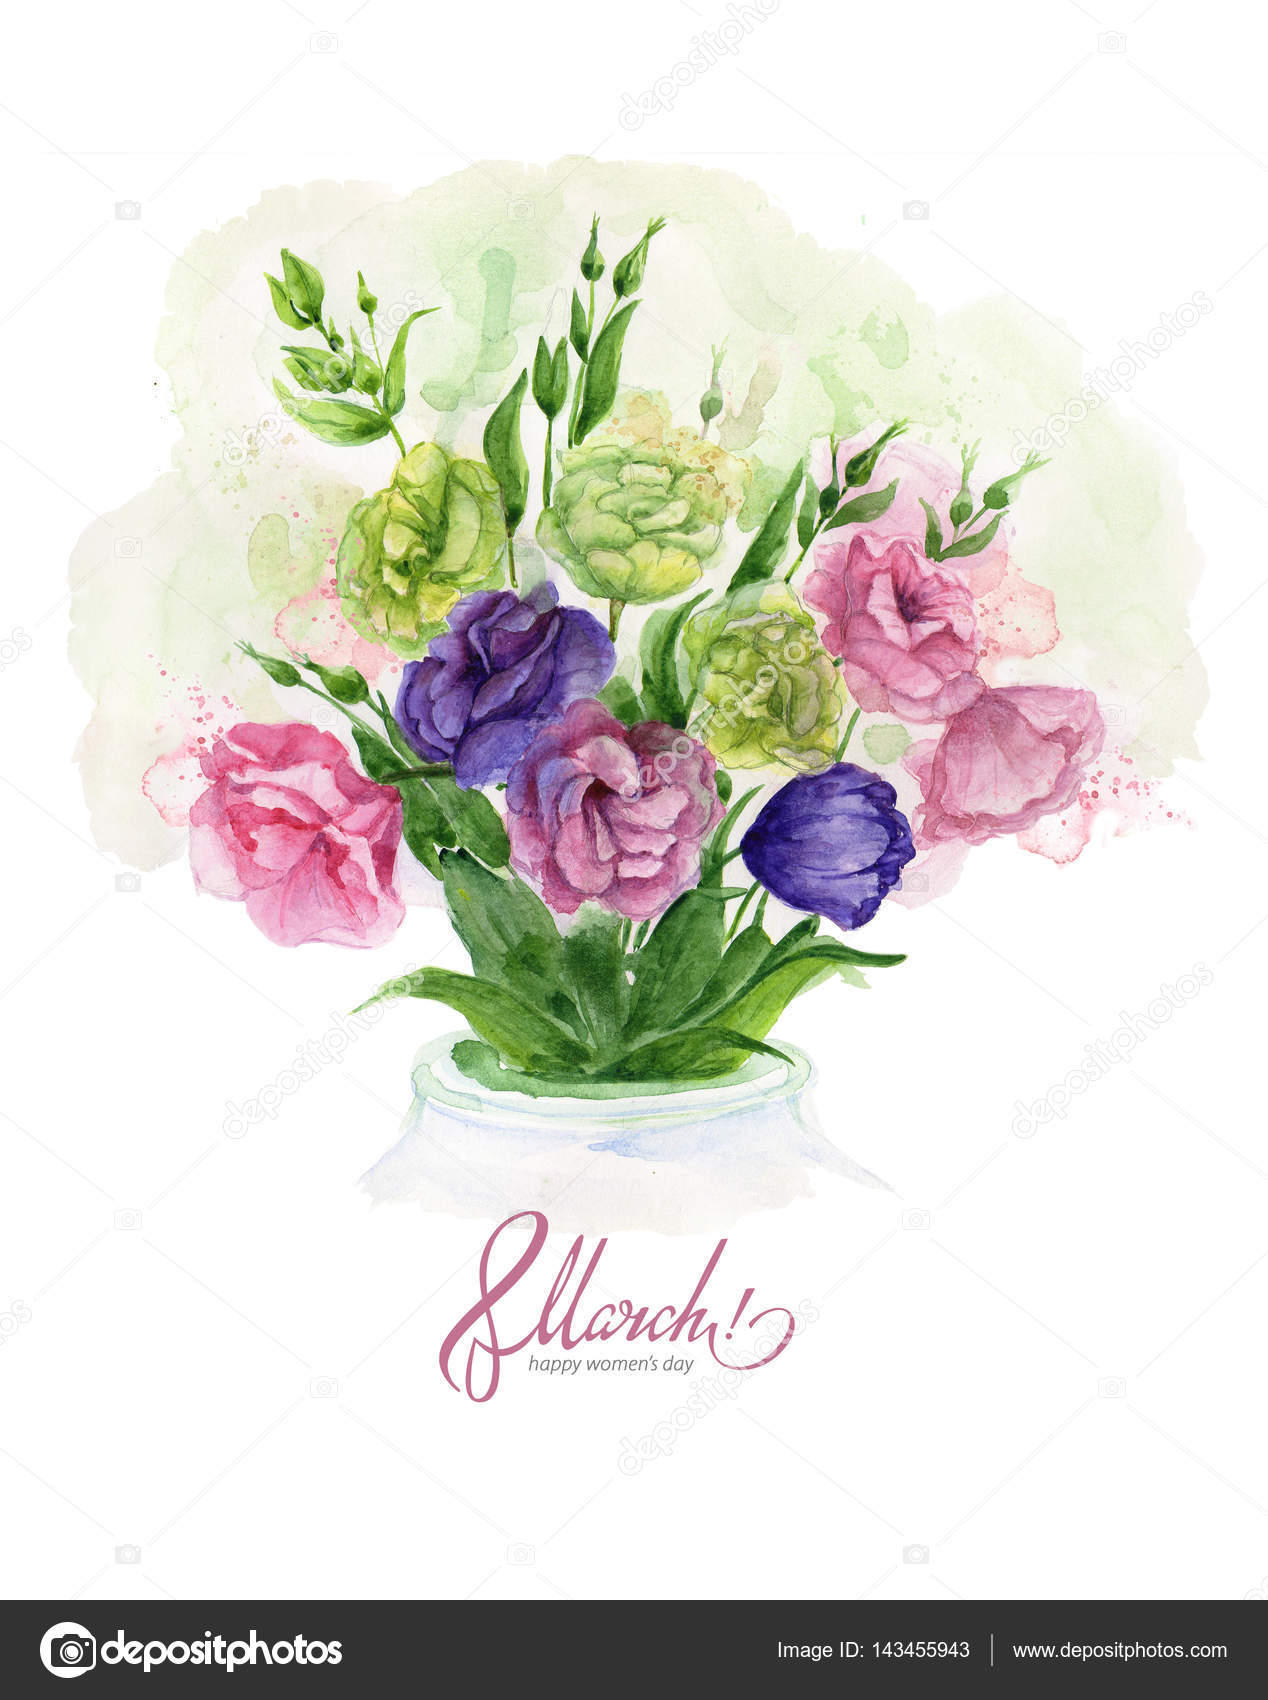 Watercolor greeting card 8 march with delicate spring eustoma watercolor greeting card 8 march with delicate spring eustoma flowers stock photo kristyandbryce Images